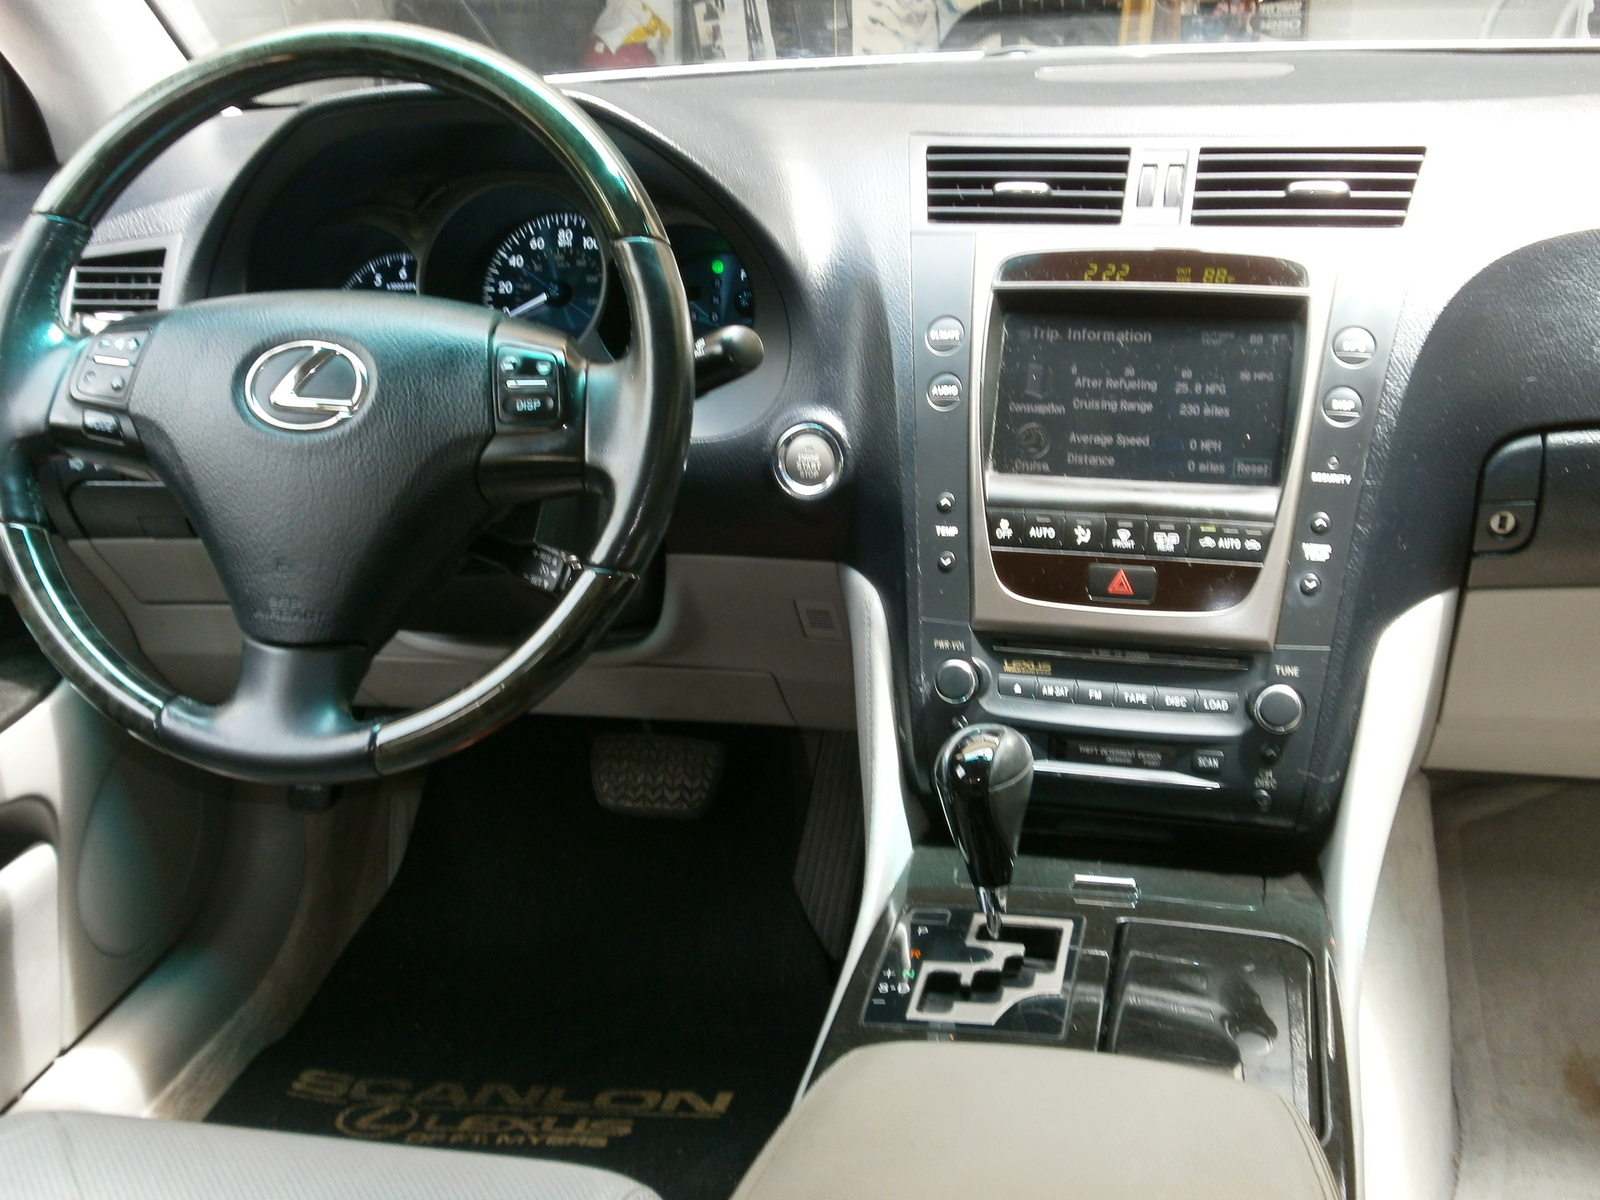 2006 lexus gs300 awd car review image gallery 2006 lexus. Black Bedroom Furniture Sets. Home Design Ideas